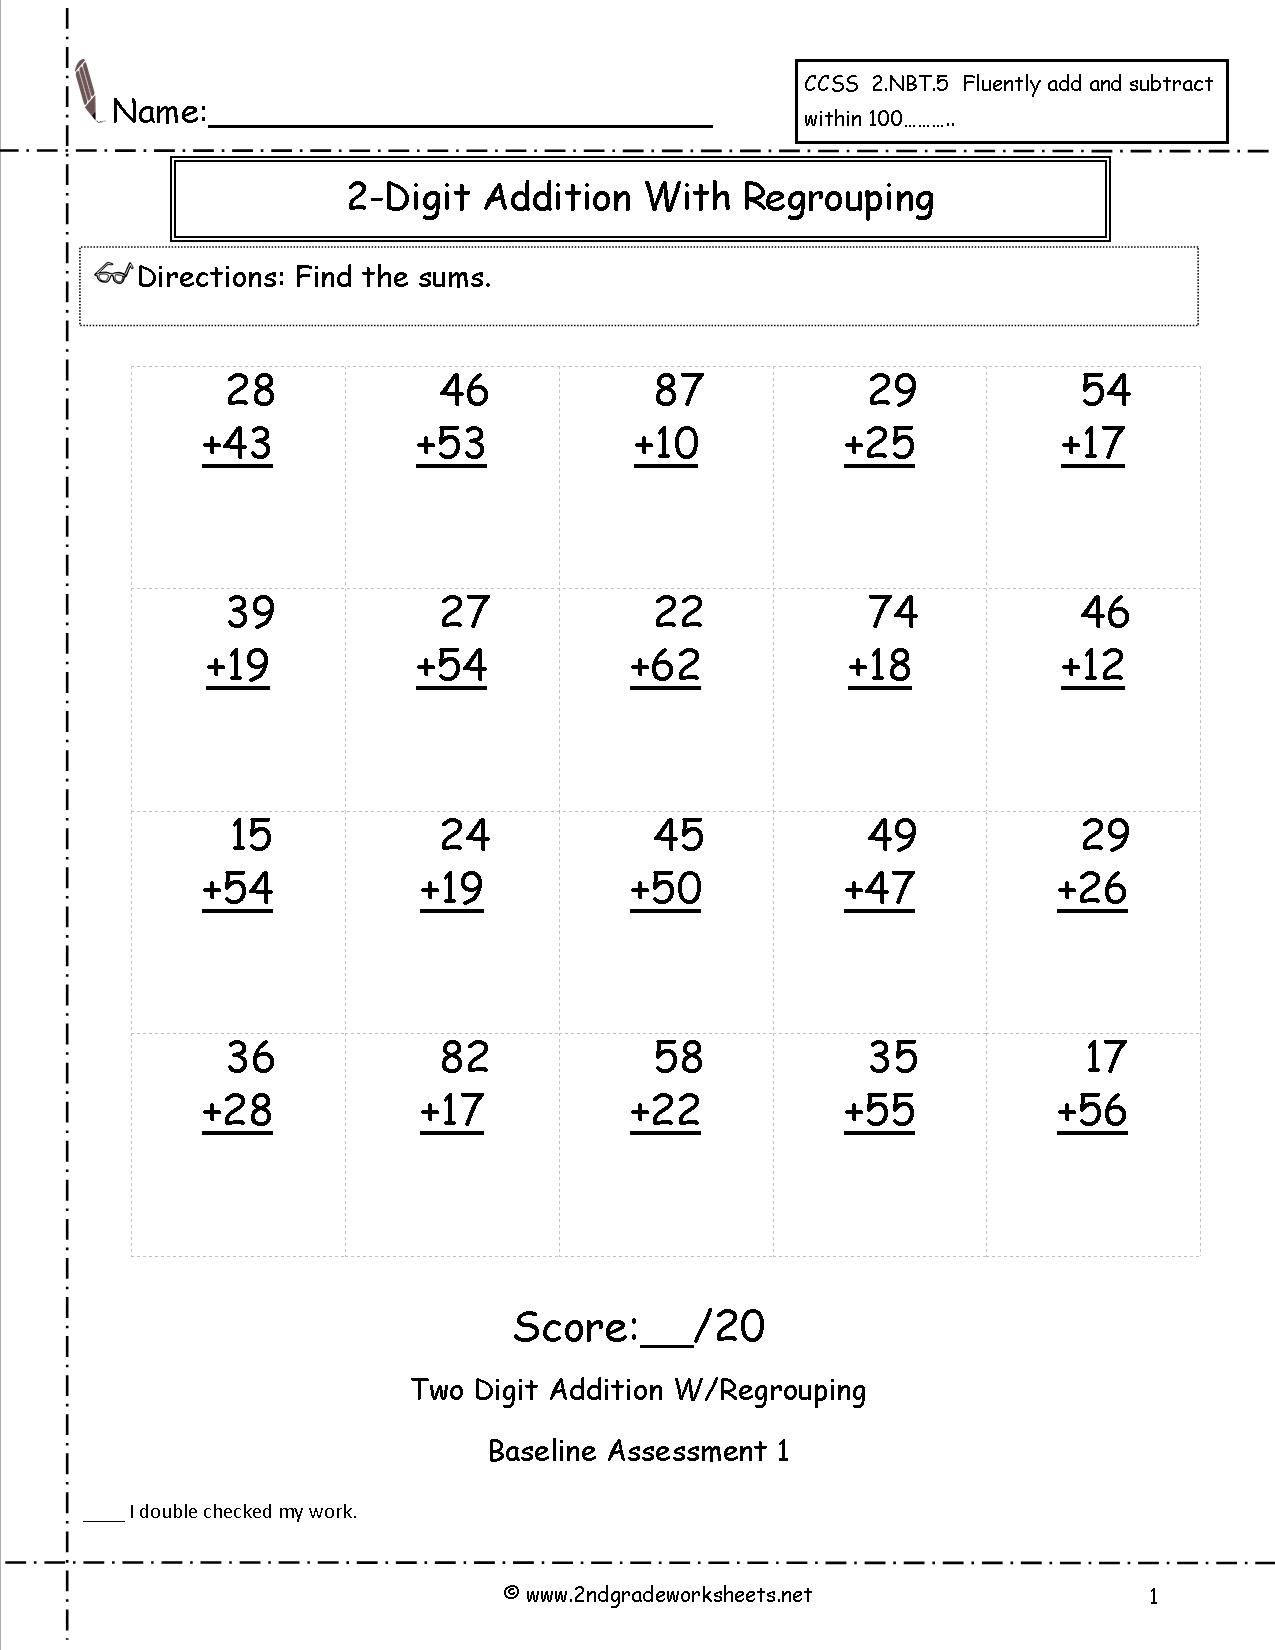 worksheet Math Aids Addition And Subtraction two digit addition with regrouping assessment love to learn assessment